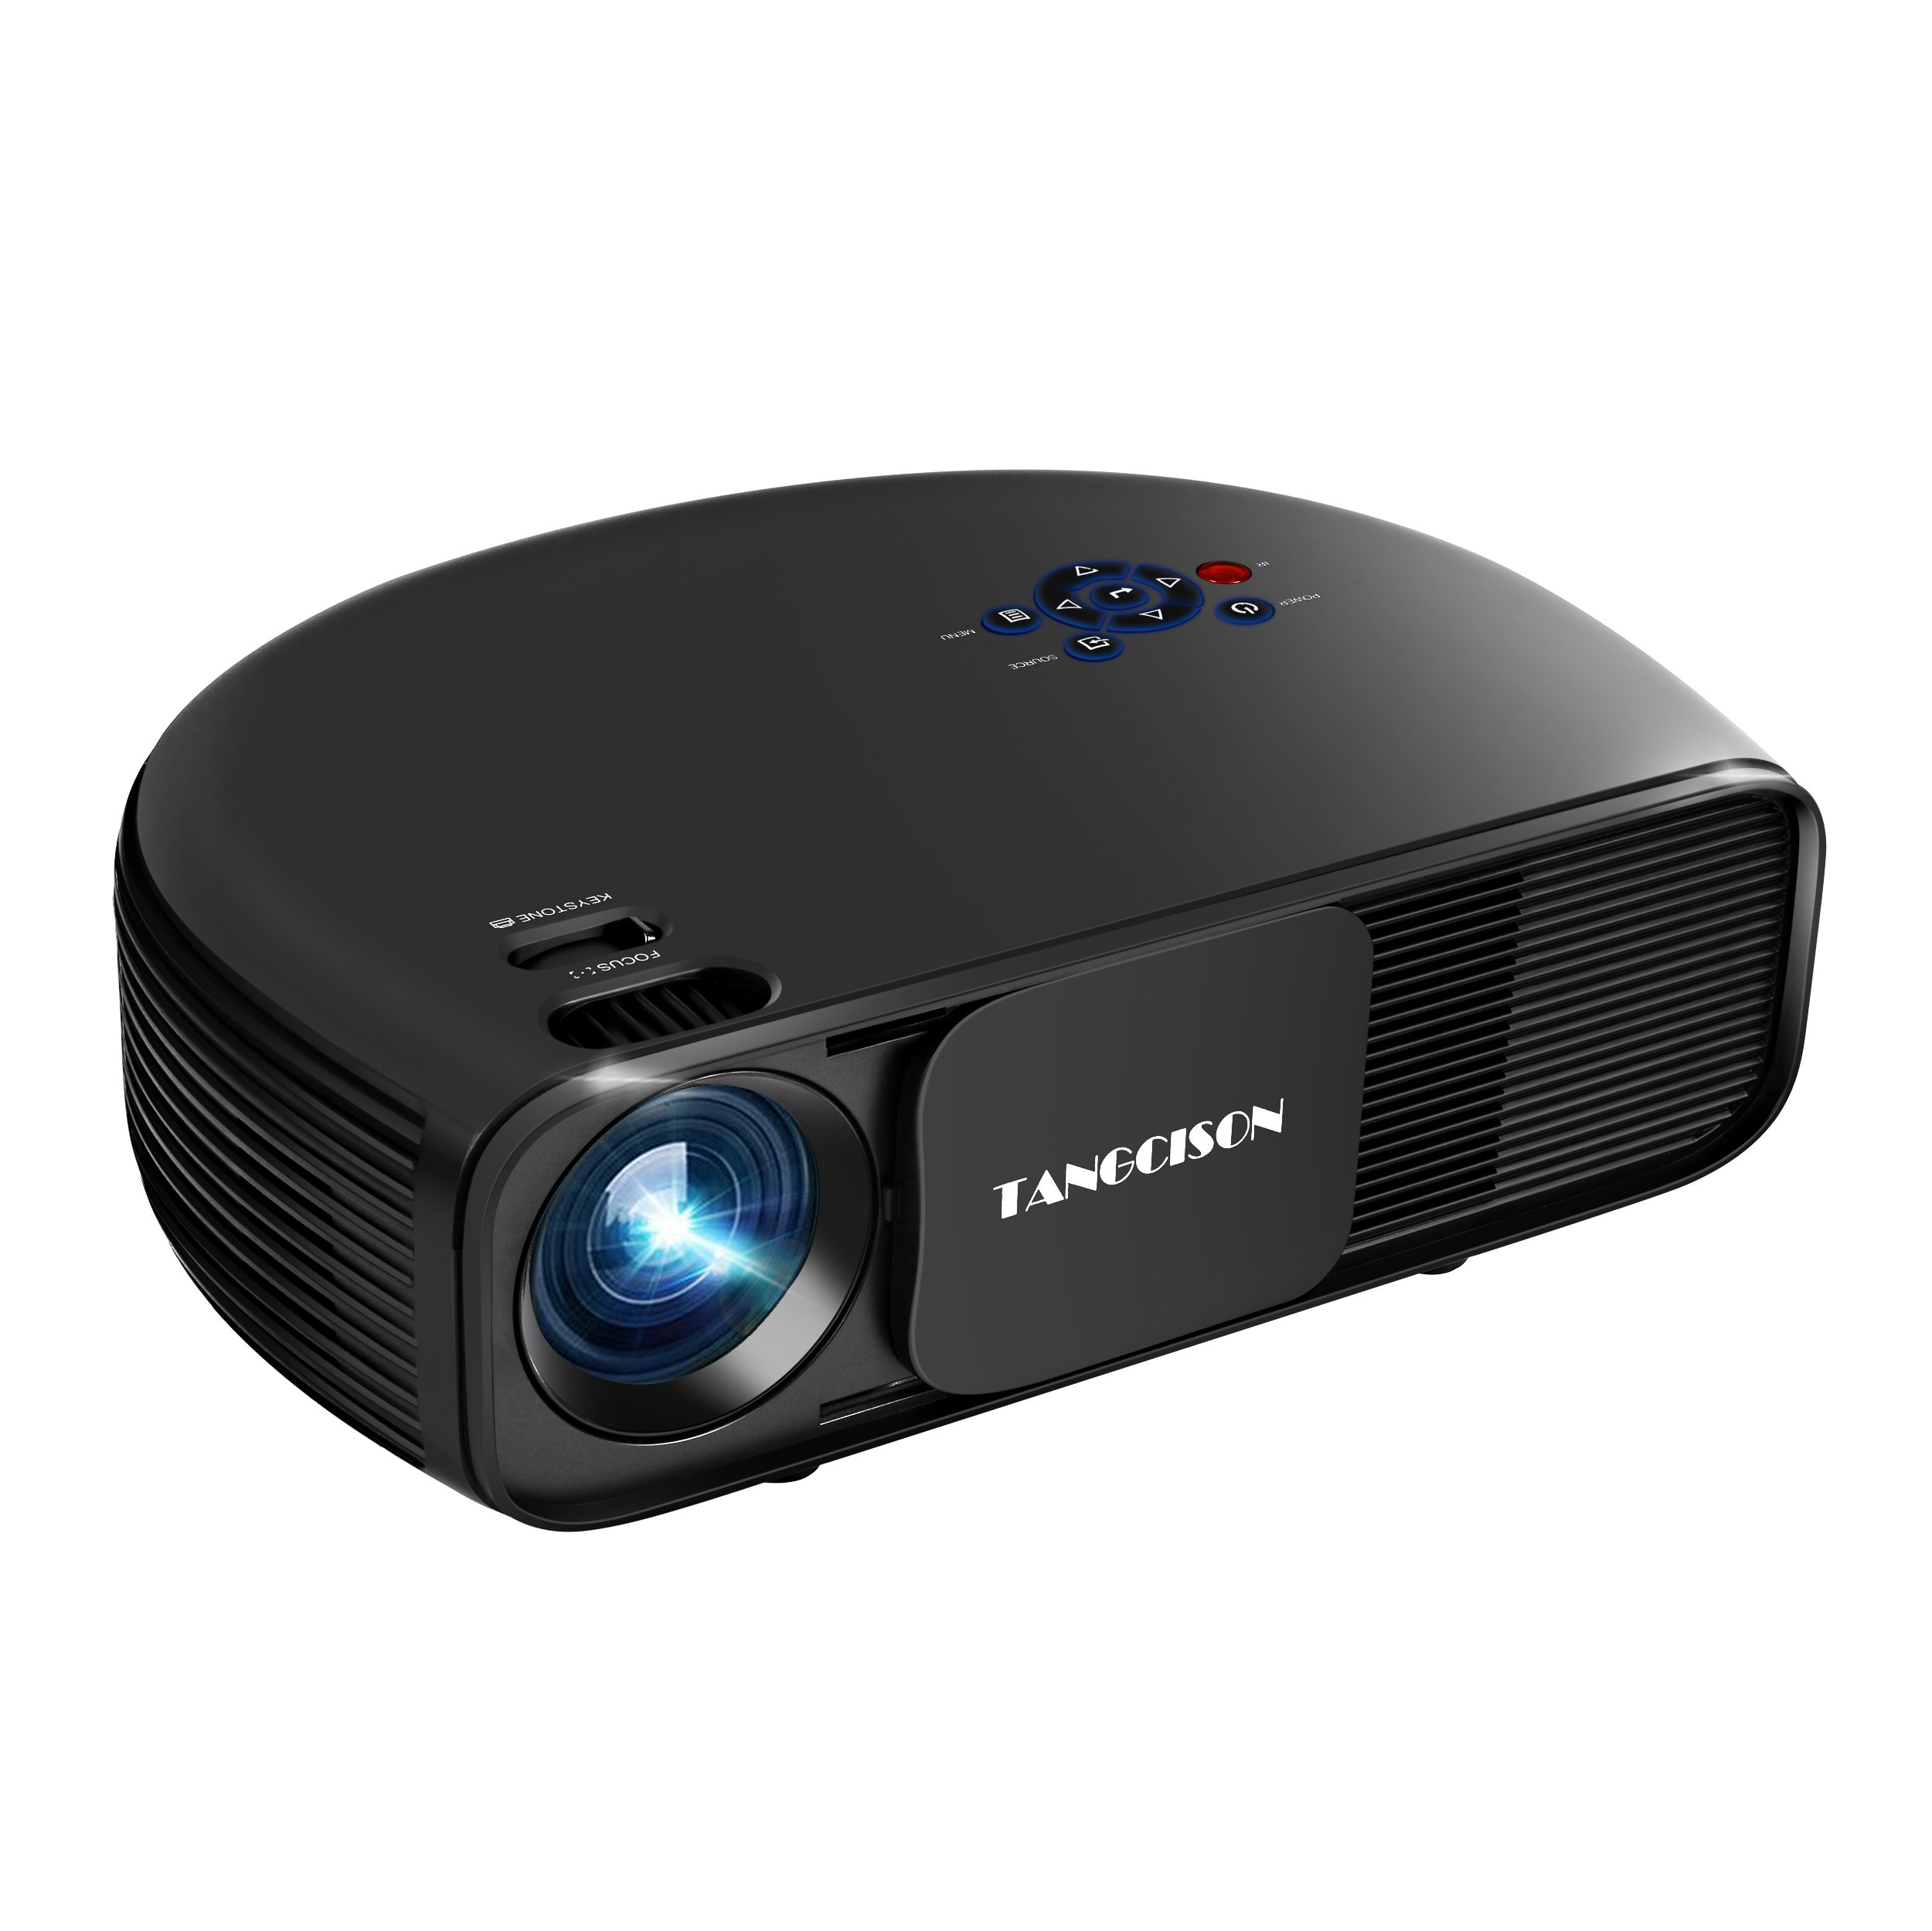 TANGCISON Home Projector Video Projector,LED Projector 1080P Projector Office Projector Multimedia Home Theater Movies Projector for Cinema Laptop Game